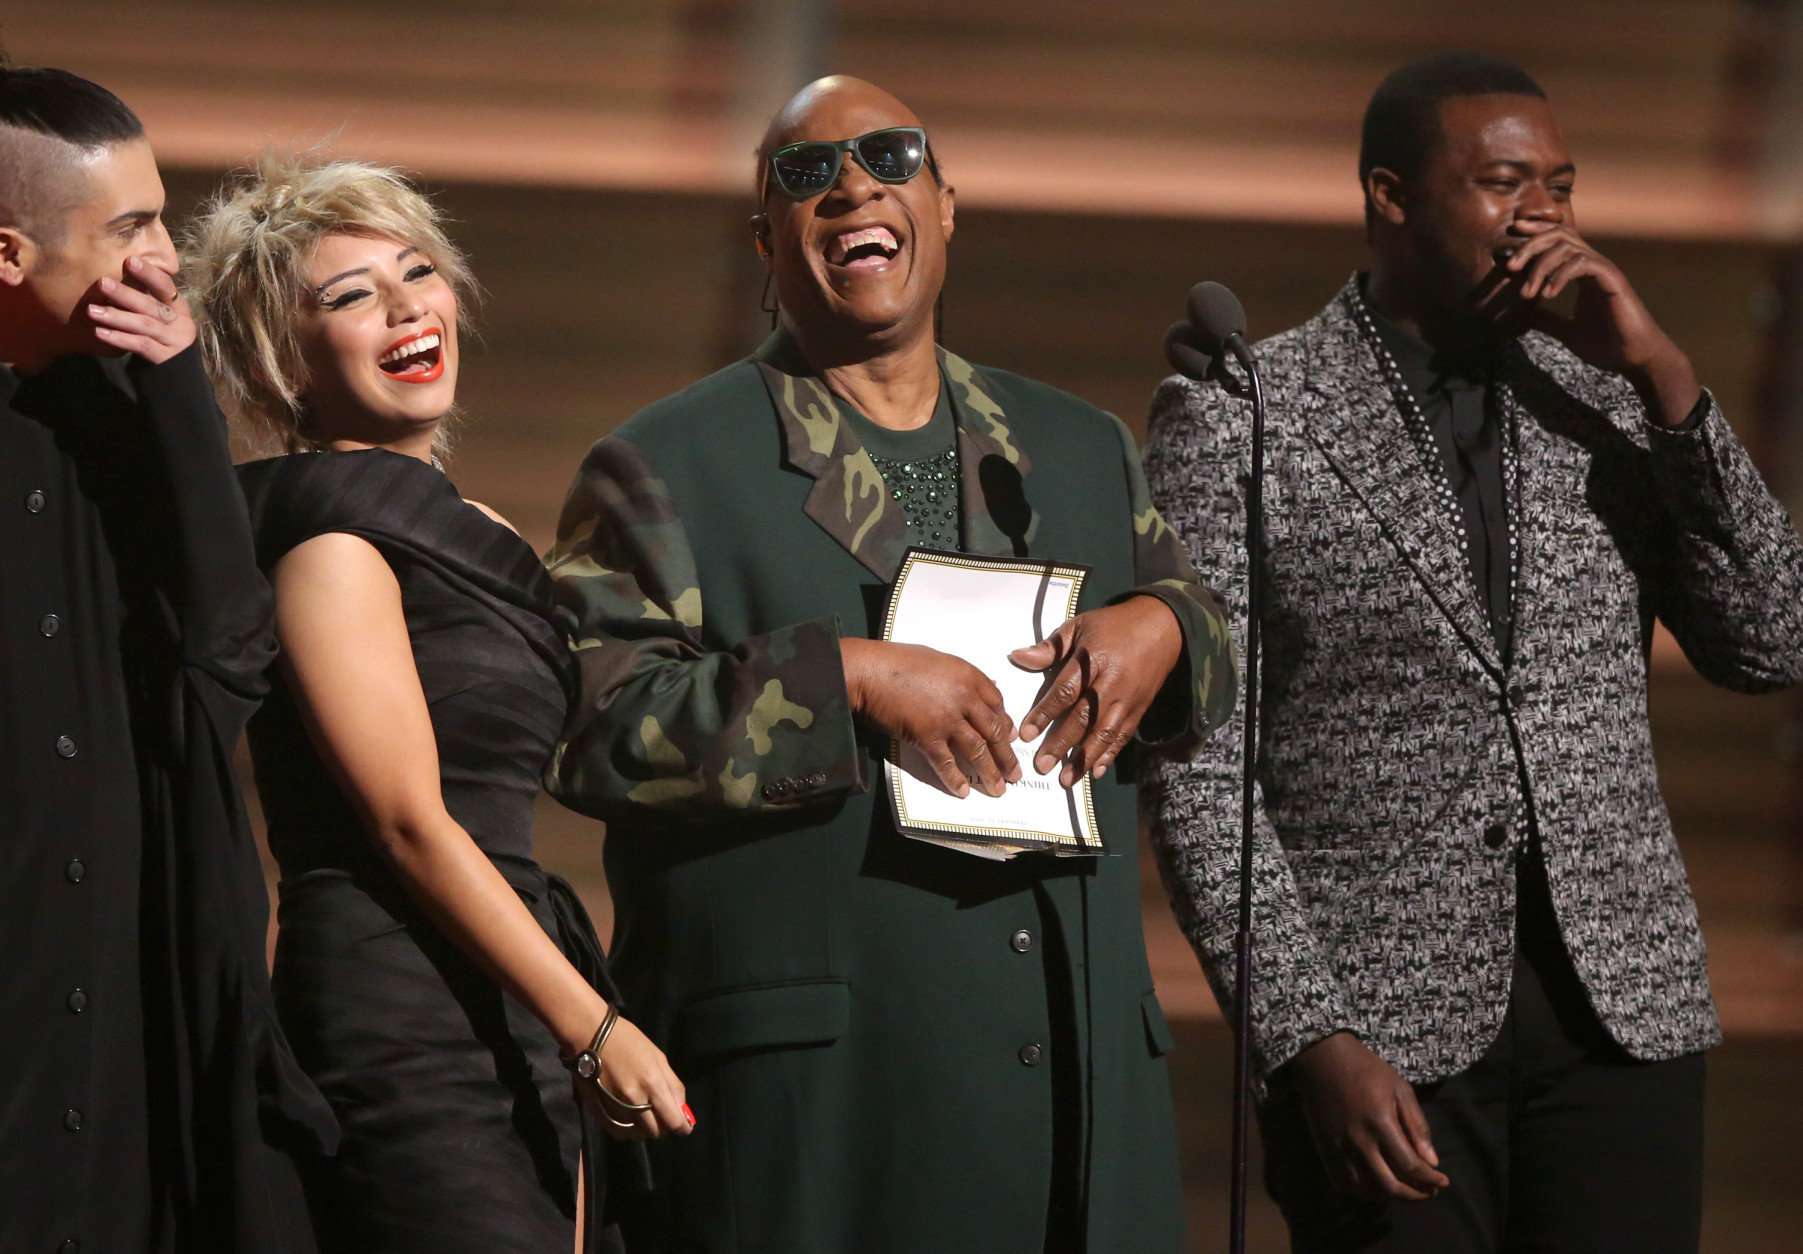 Stevie Wonder, center, and from left Mitch Grassing, Kristin Maldonado, and Kevin Olusola of Pentatonix present the award for song of the year at the 58th annual Grammy Awards on Monday, Feb. 15, 2016, in Los Angeles. (Photo by Matt Sayles/Invision/AP)